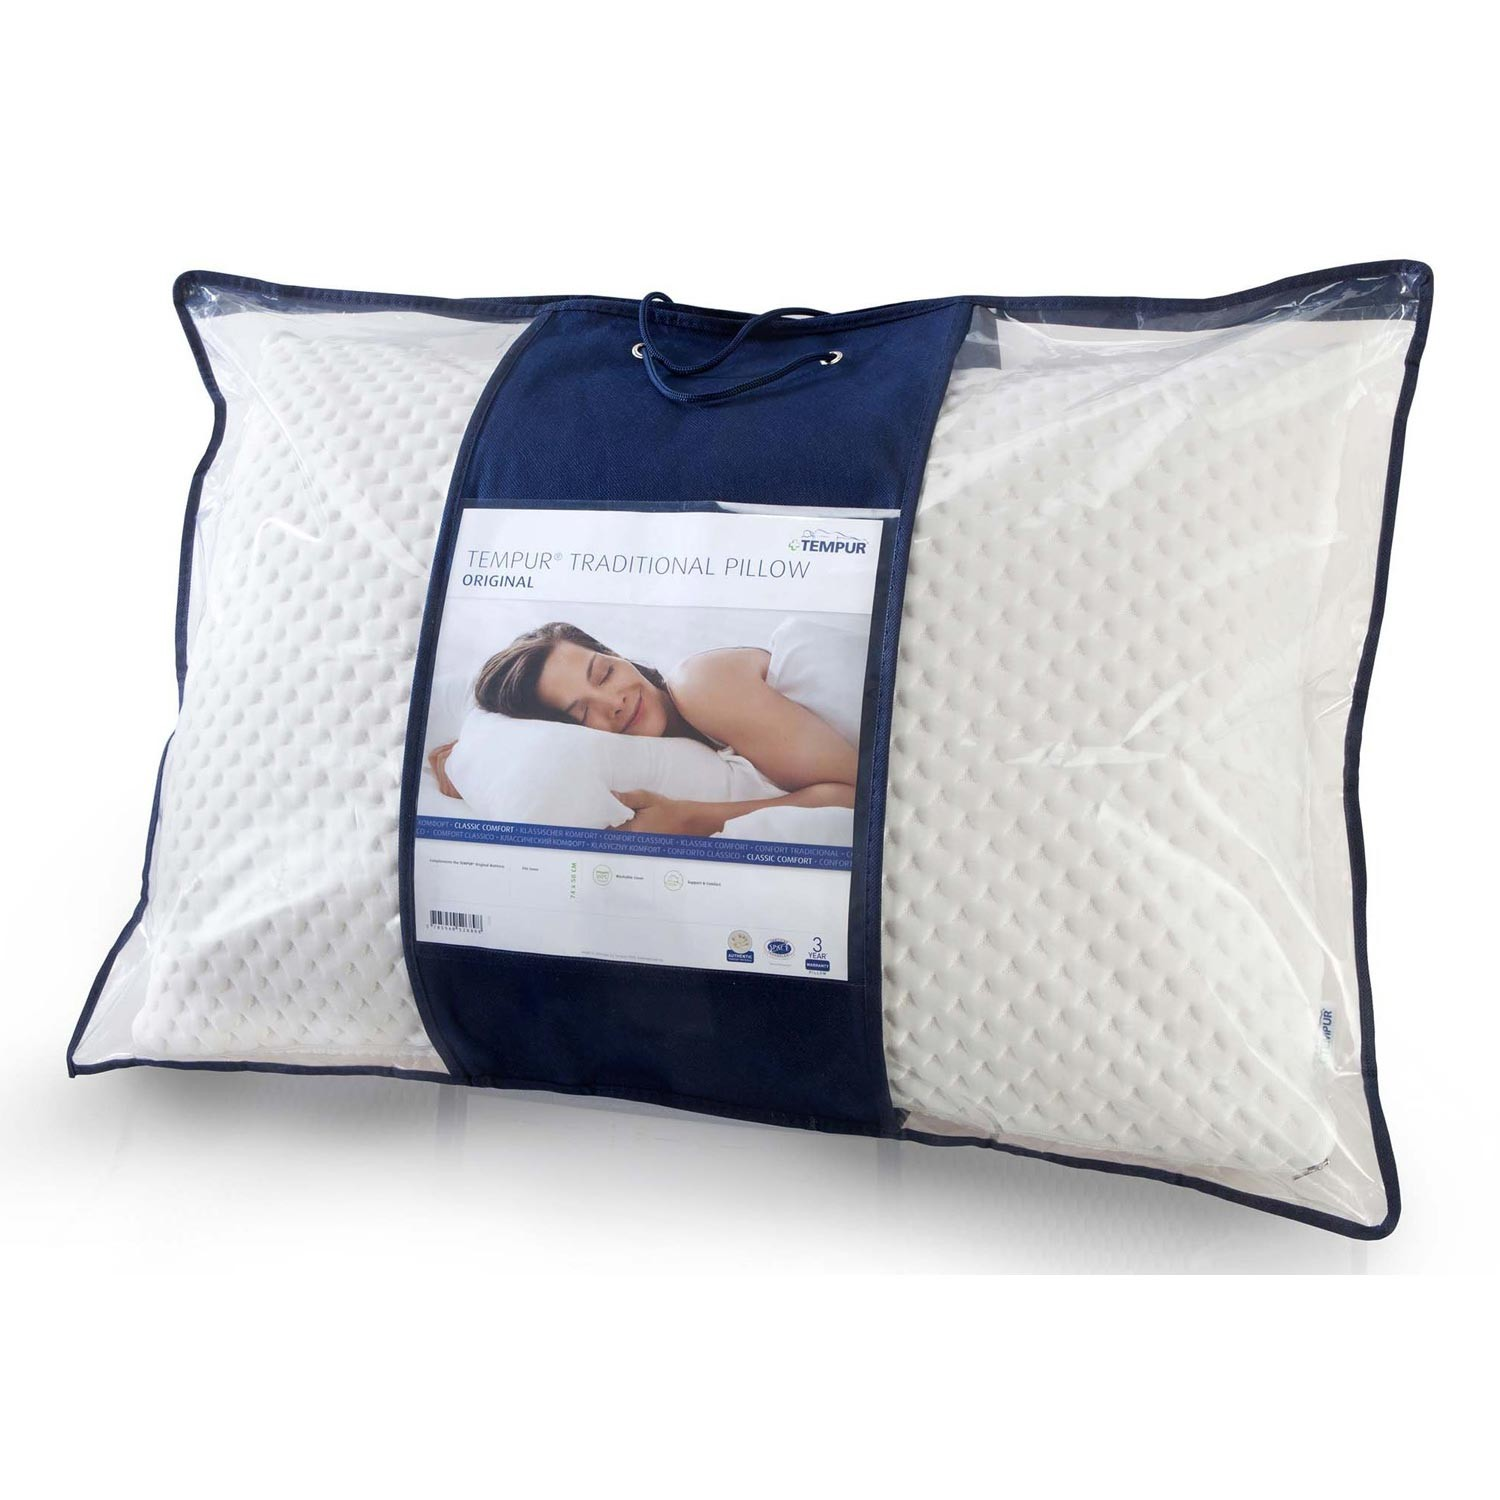 Tempur Traditional Travel Pillow : Tempur Comfort Pillow Traditional Leekes